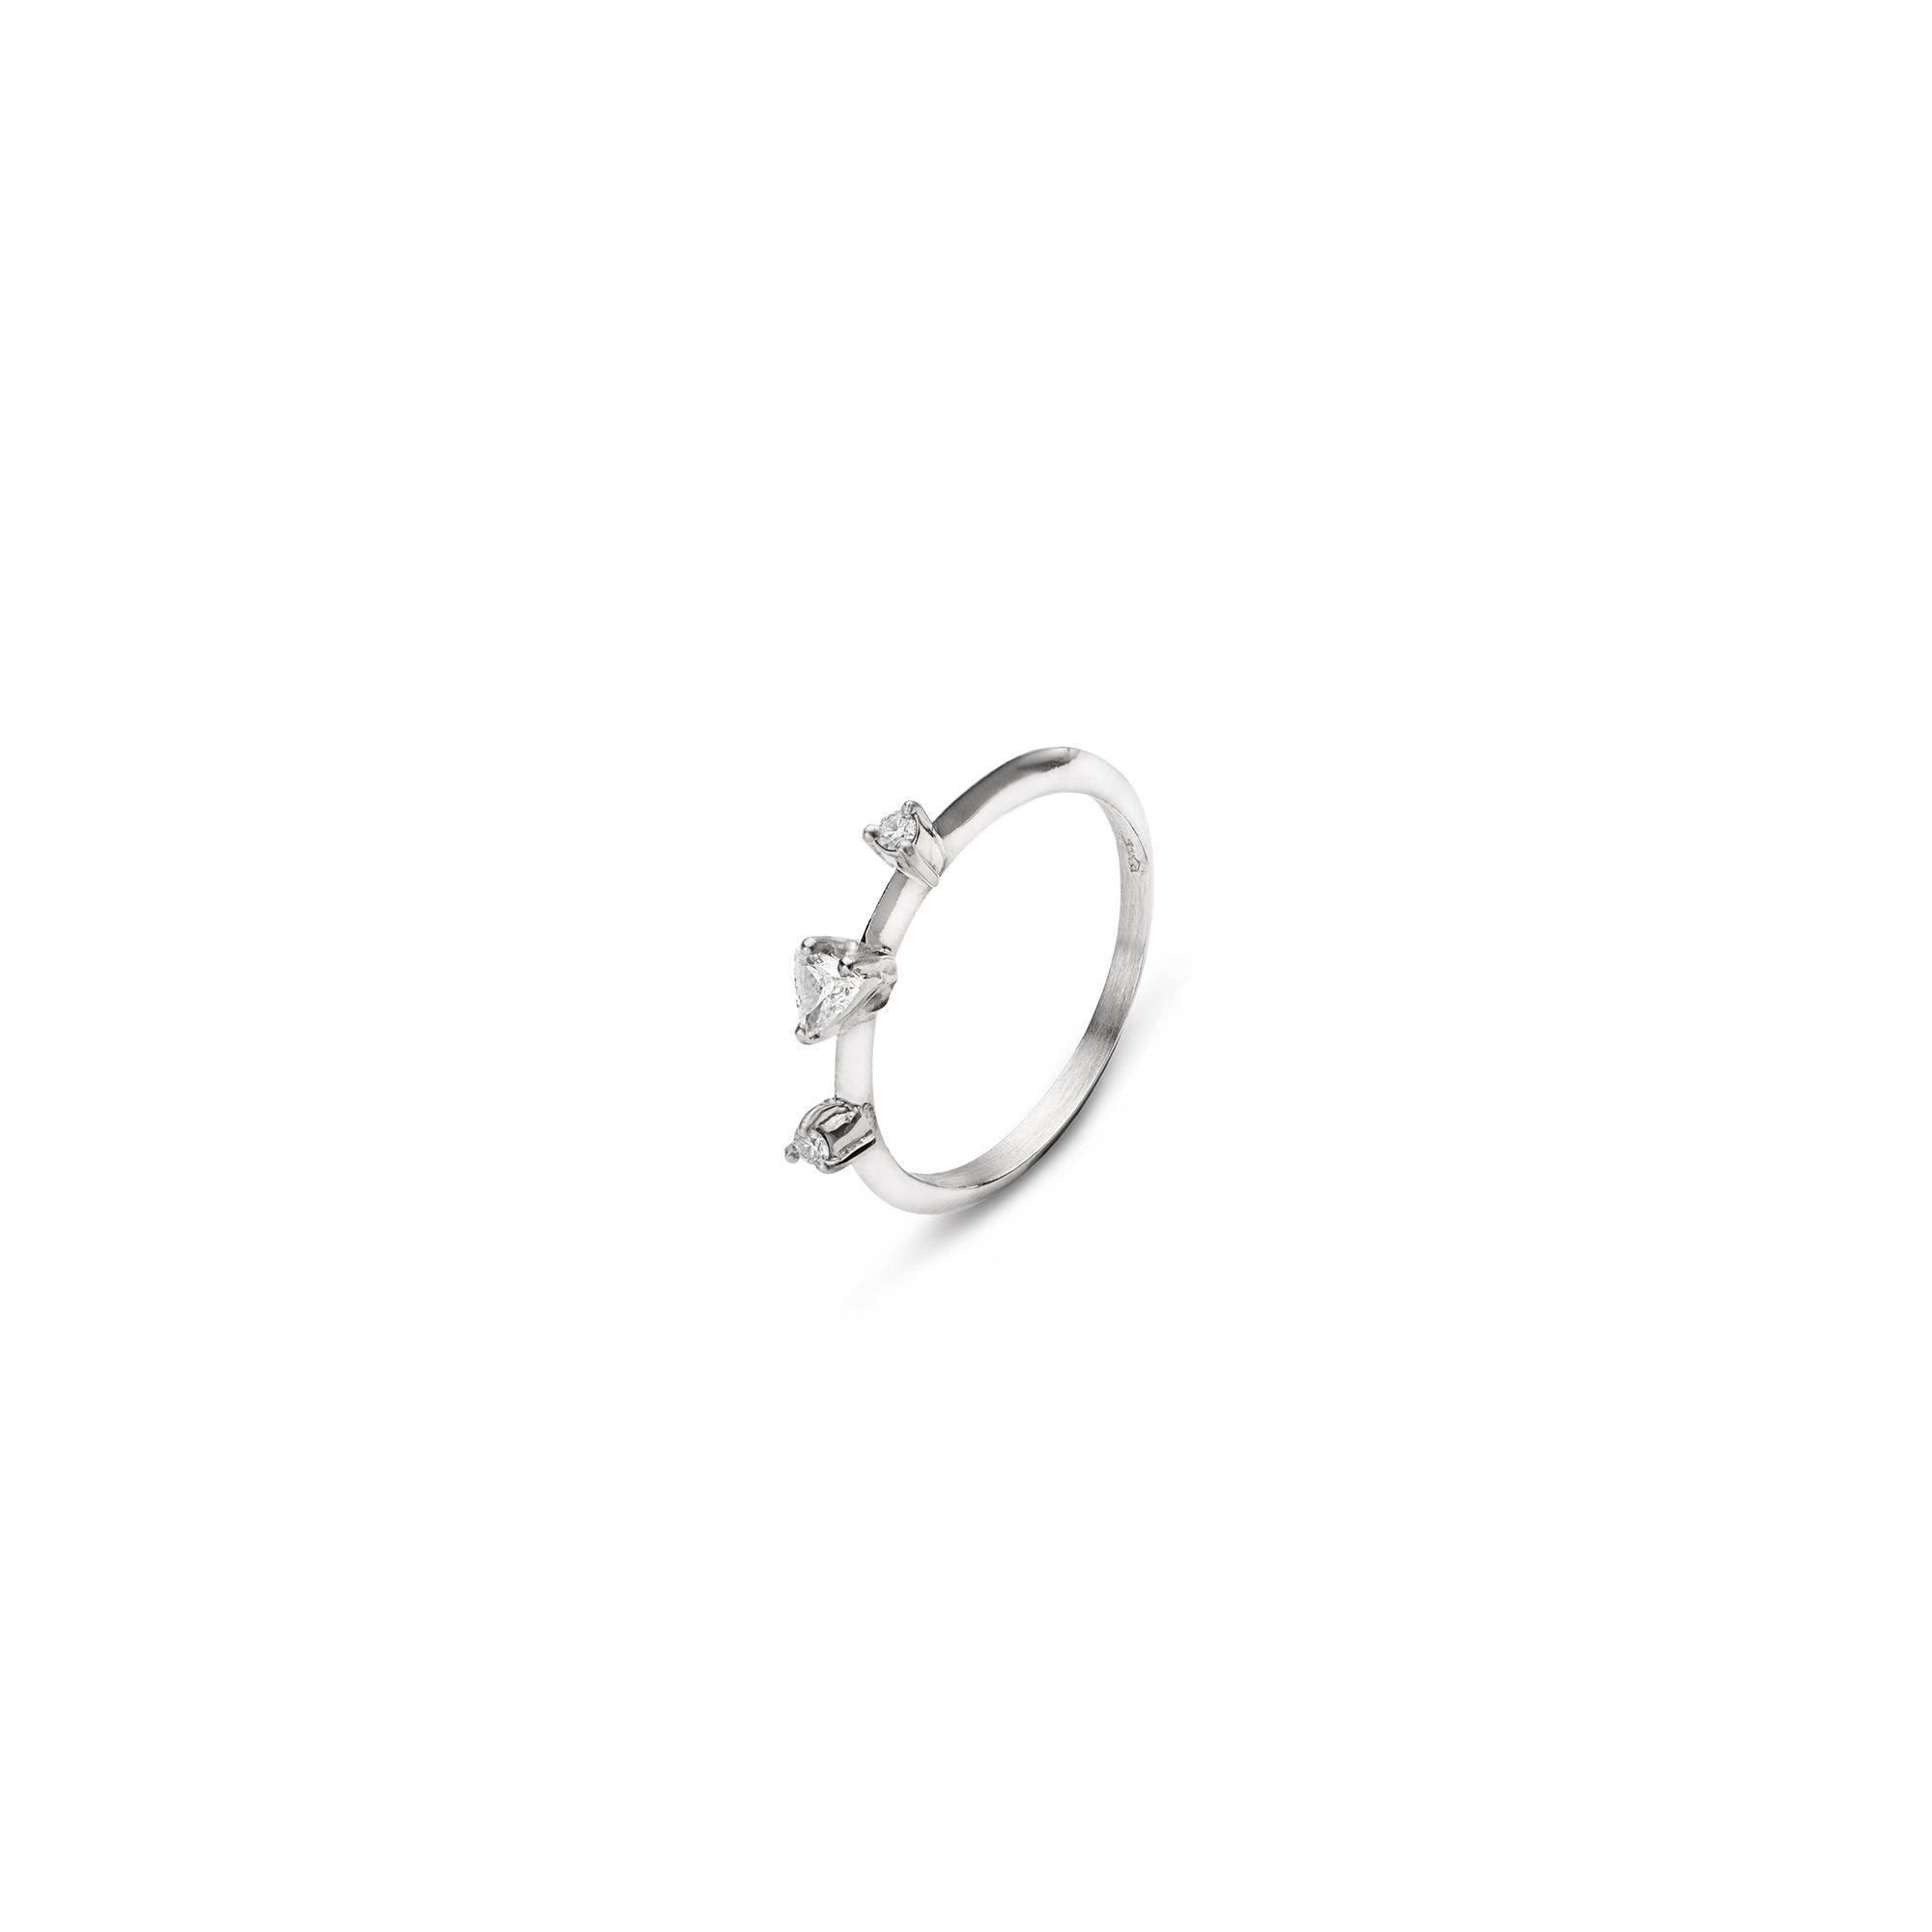 White gold 'Balance' ring with triangle cut diamond White gold ring with diamonds